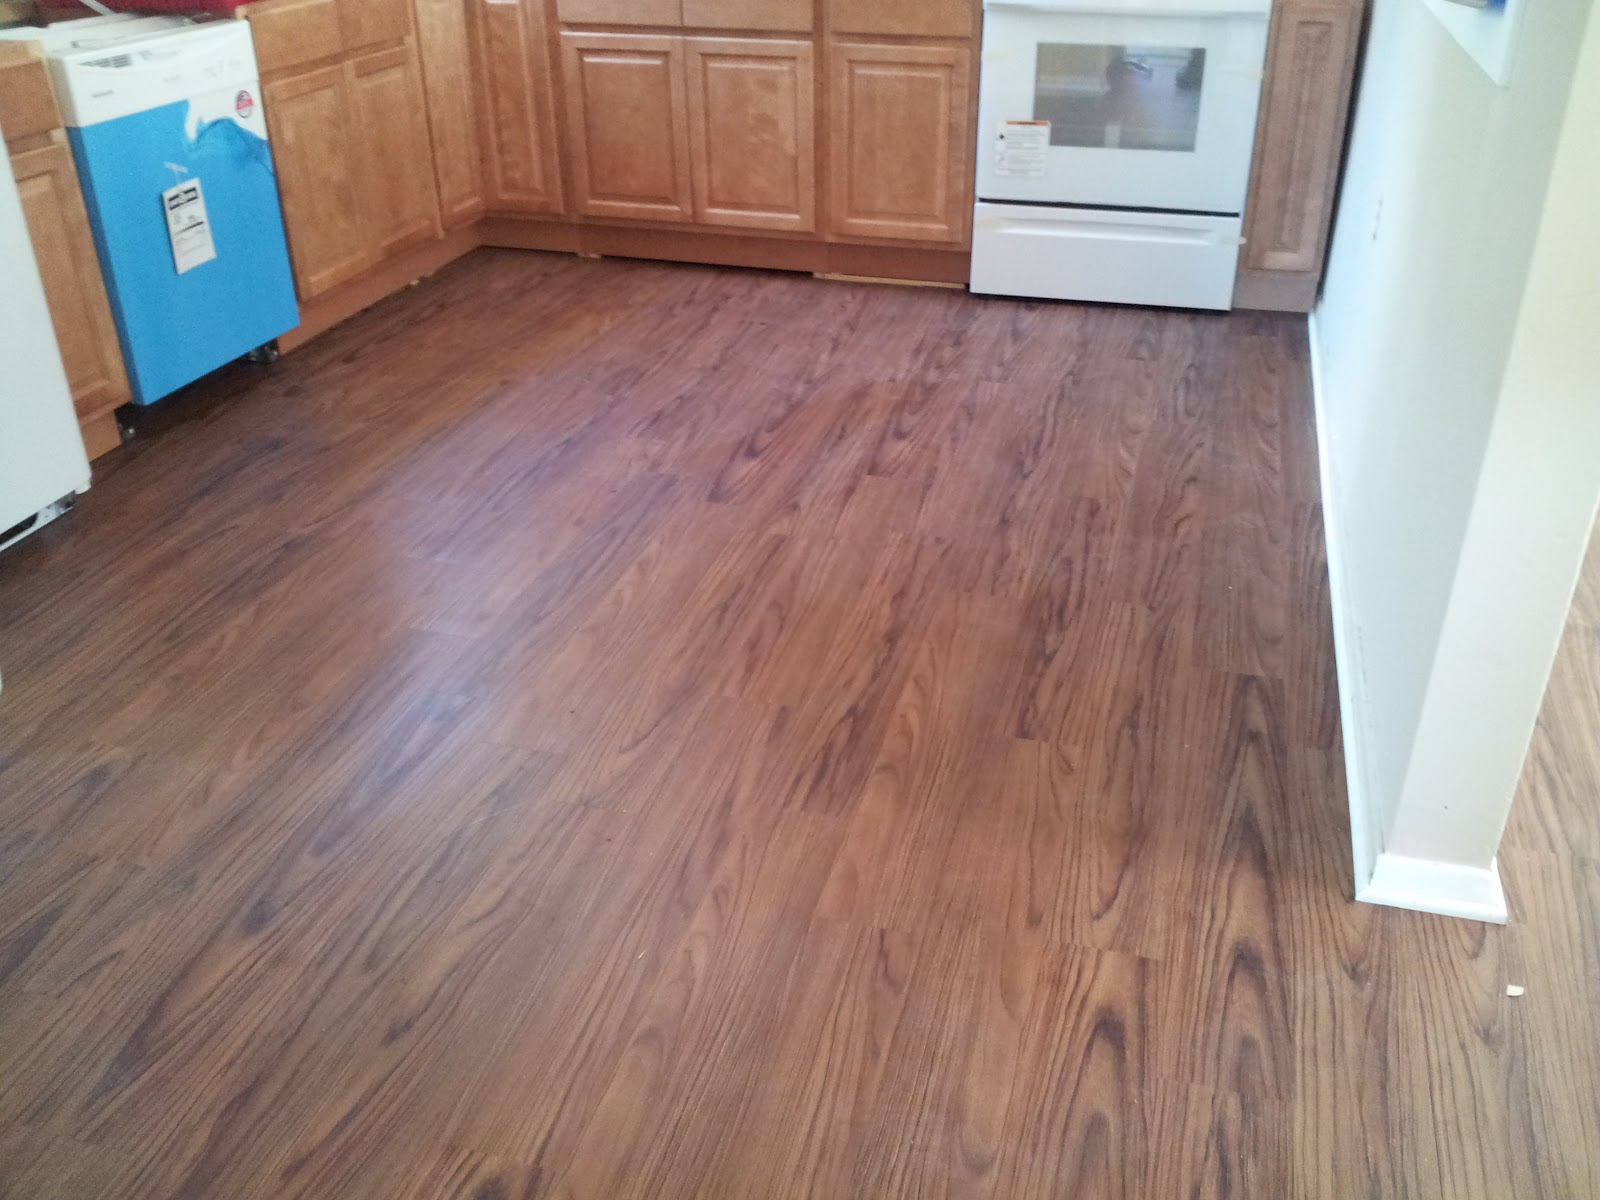 Vinyl flooring that looks like wood ask home design for Wood linoleum